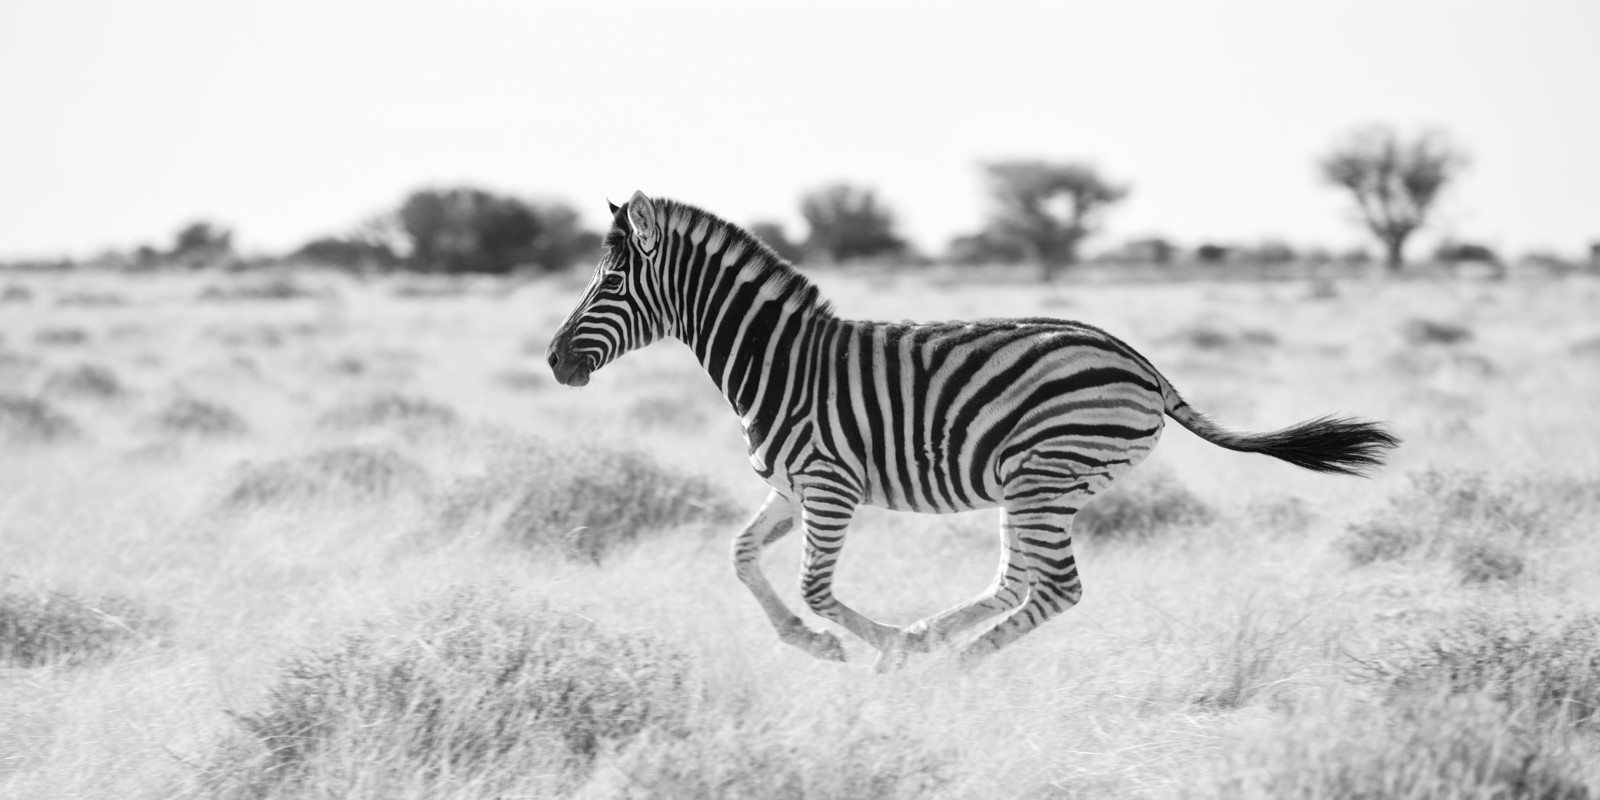 Zebras and oxpeckers: Why resident physicians and social media need each other